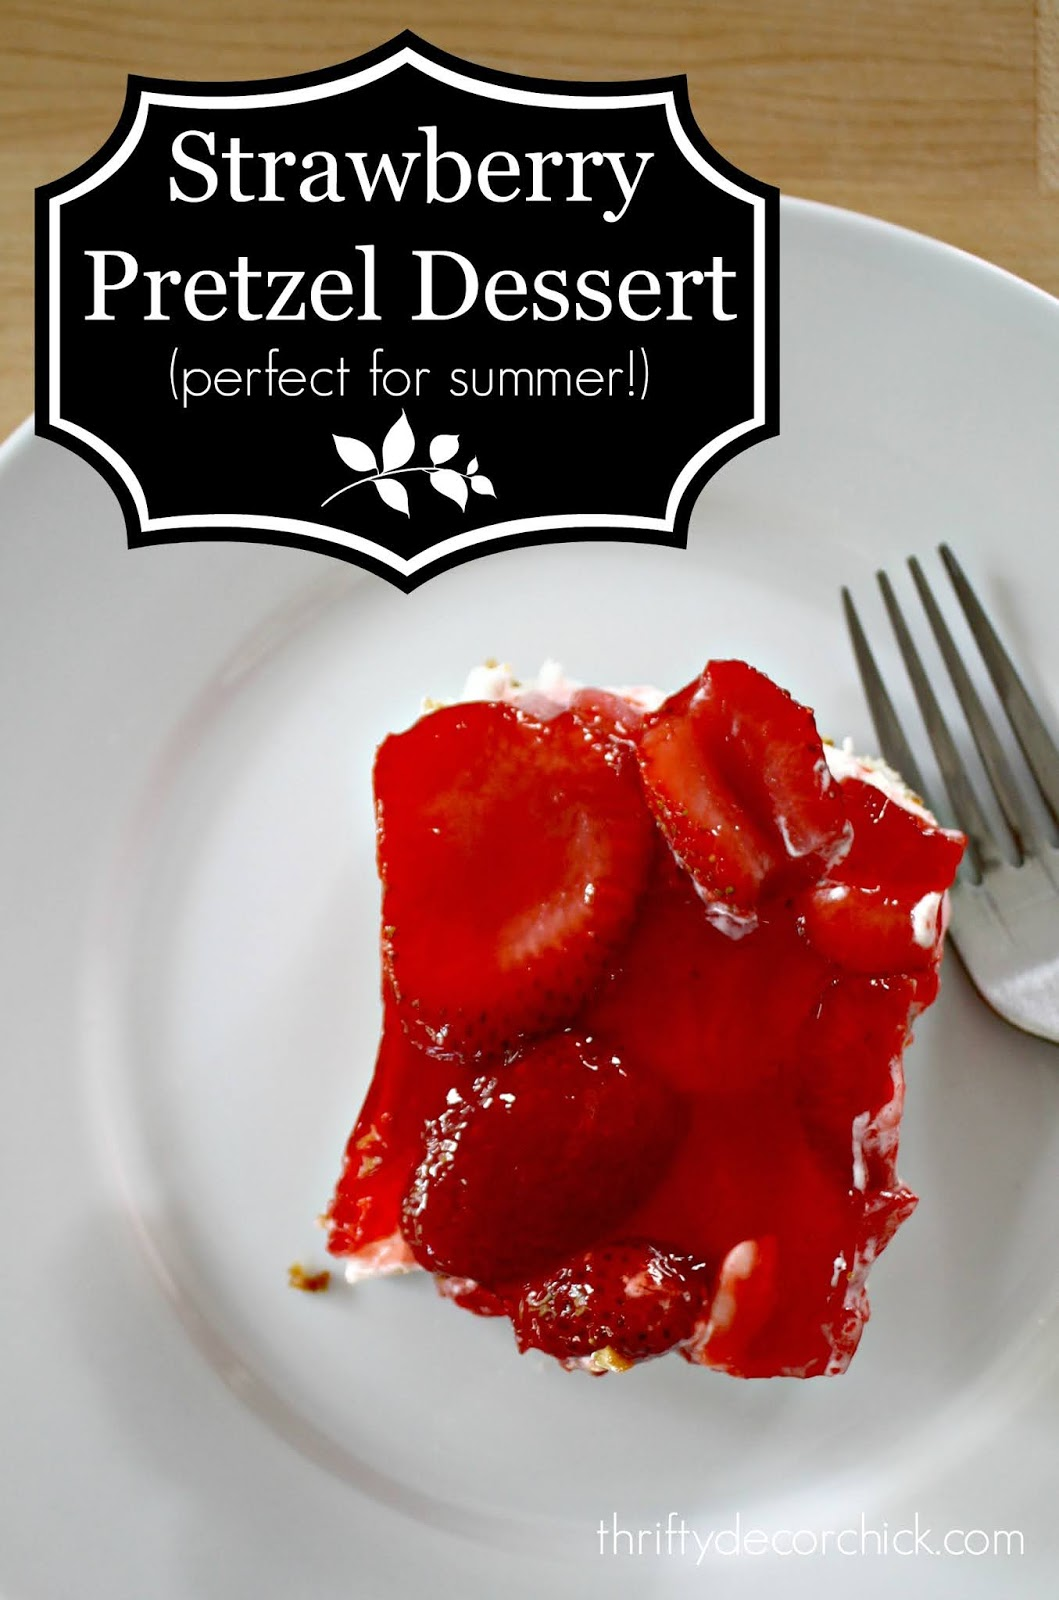 Delicious strawberry pretzel dessert